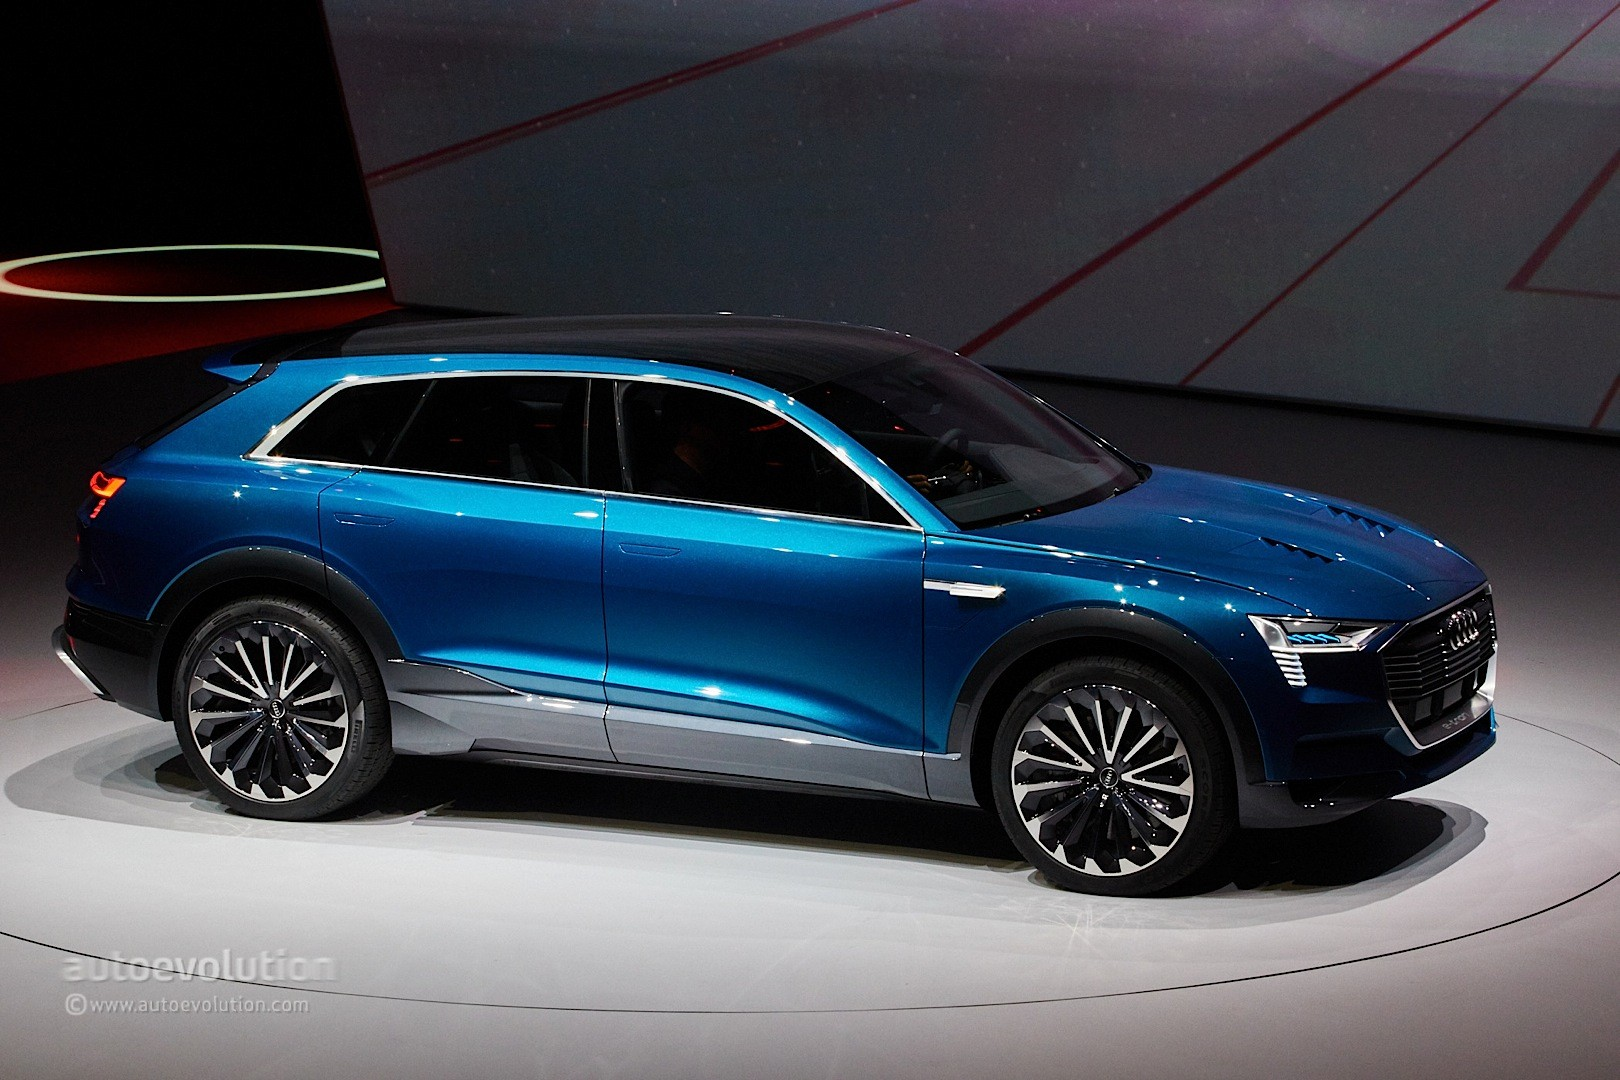 Audi etron electric SUV appears in camouflage at Geneva